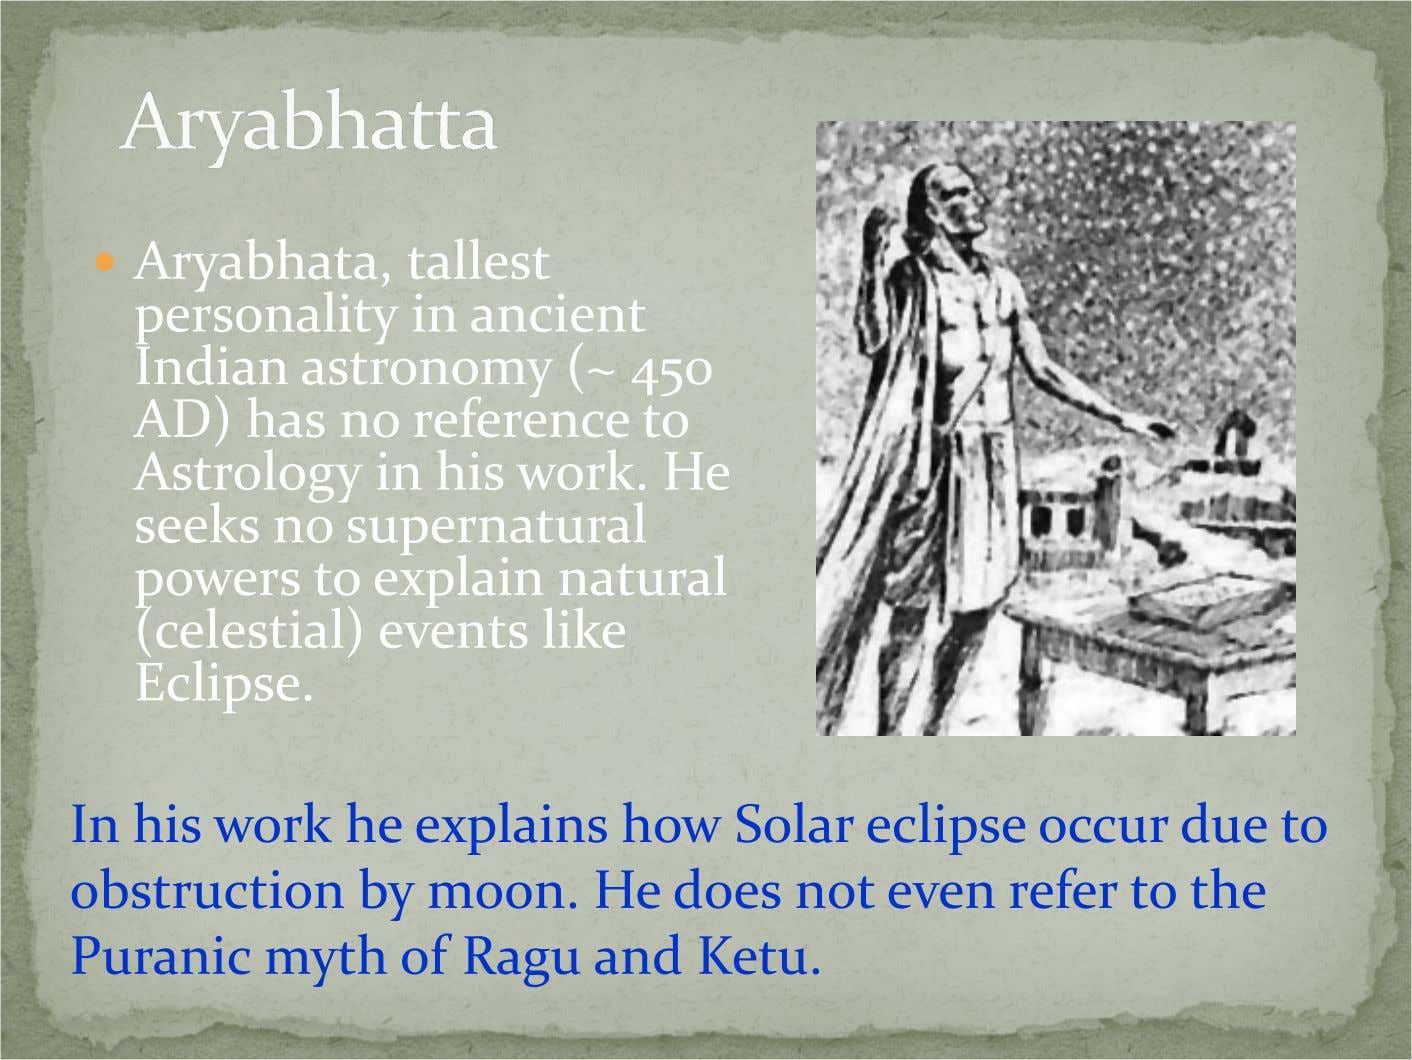 Aryabhata, tallest personality in ancient Indian astronomy (~ 450 AD) has no reference to Astrology